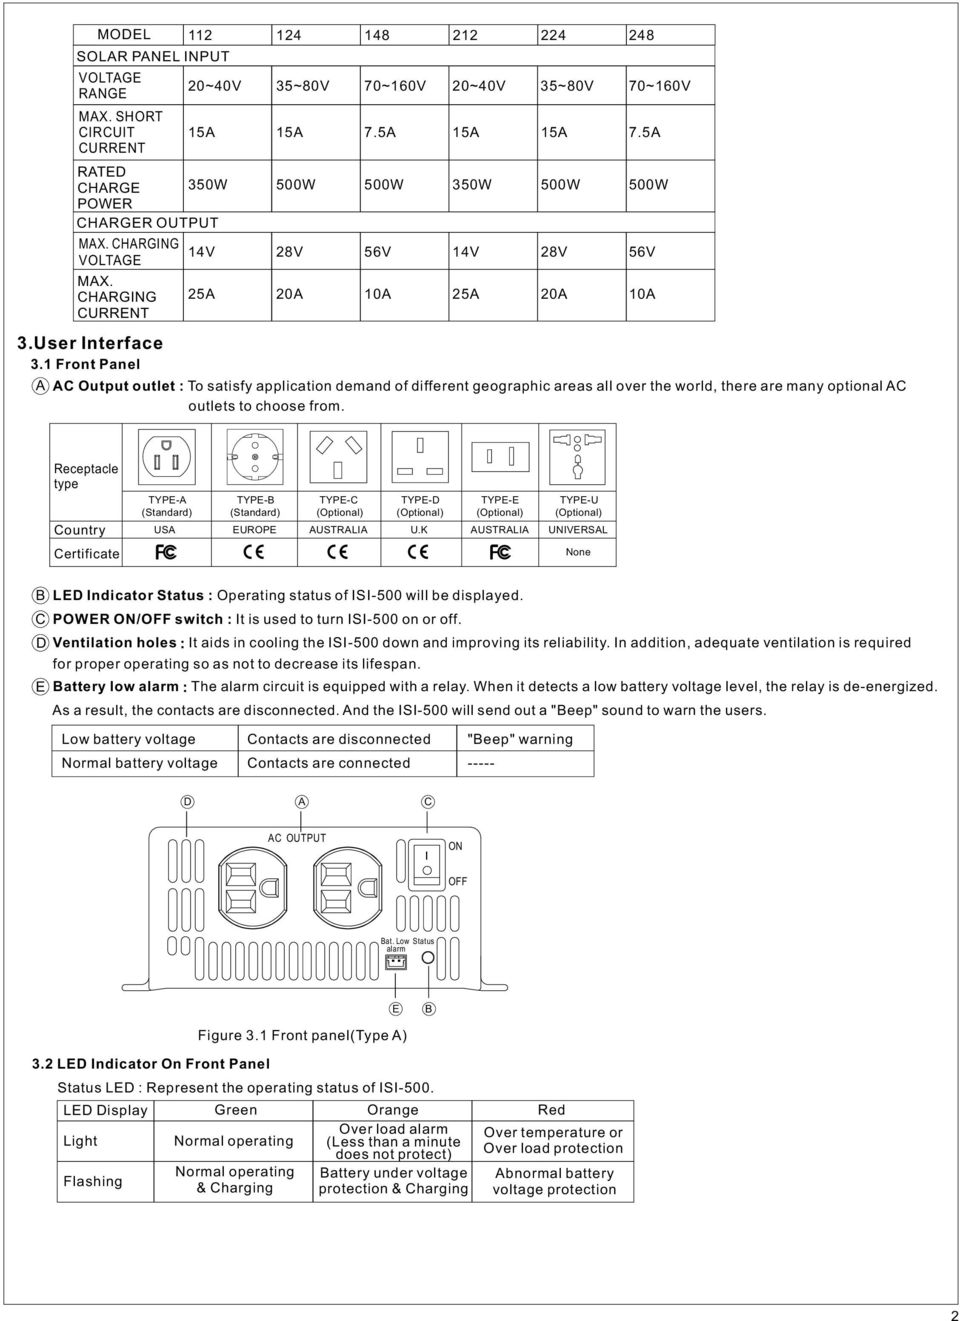 Isi 500 Stand Alone Solar Inverter Instruction Manual Pdf Design Of The 3 Kva Modified Sine Wave Should Look Like This 5a 56v 10a 350w 14v Ac Output Outlet To Satisfy Application Demand Different Geographic